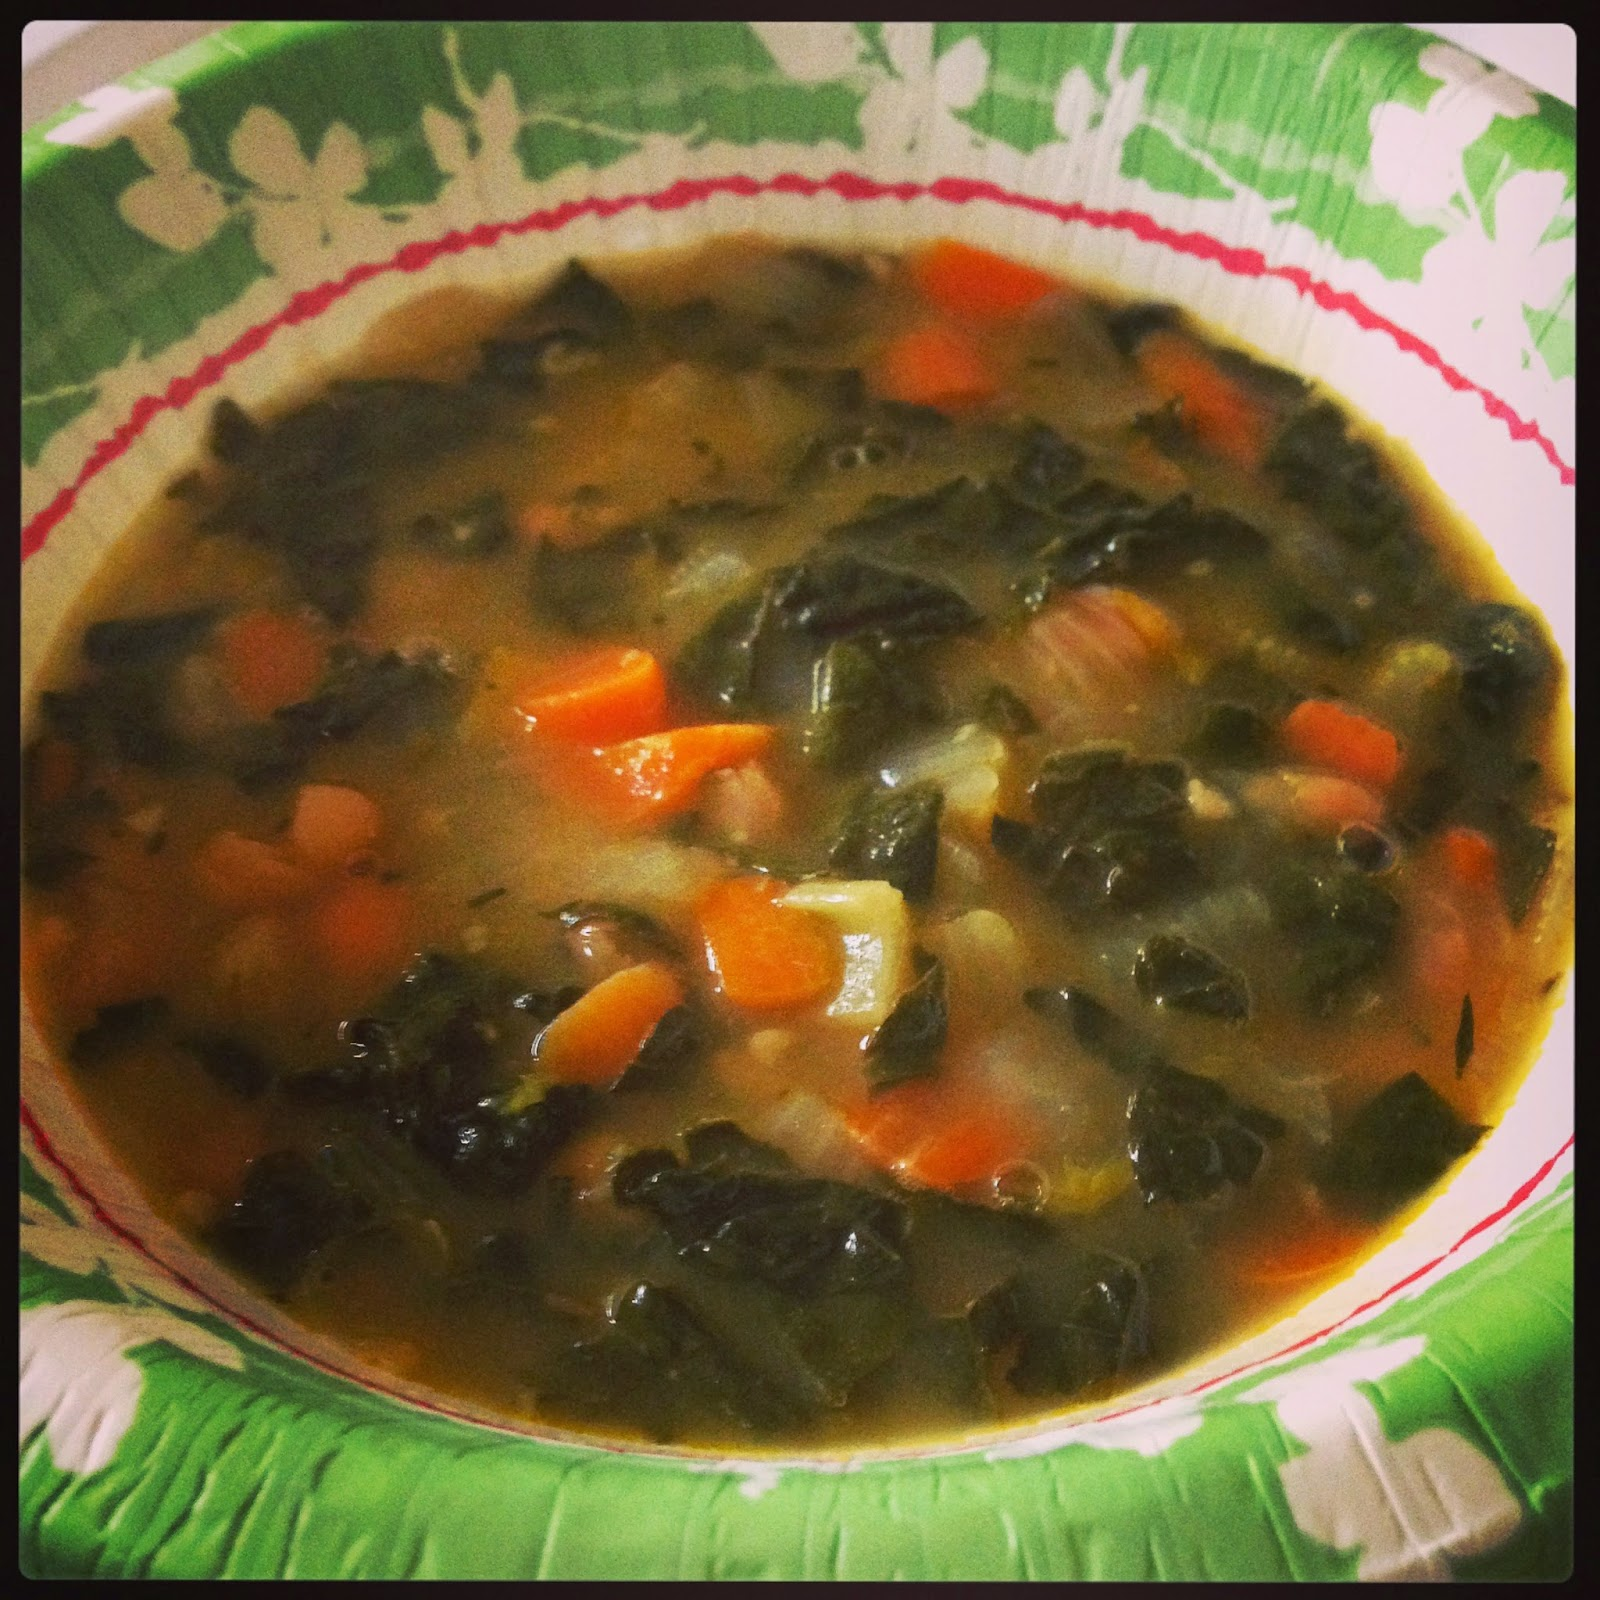 Kale and Cannellini Bean Soup | 21st Century Urban Pioneers